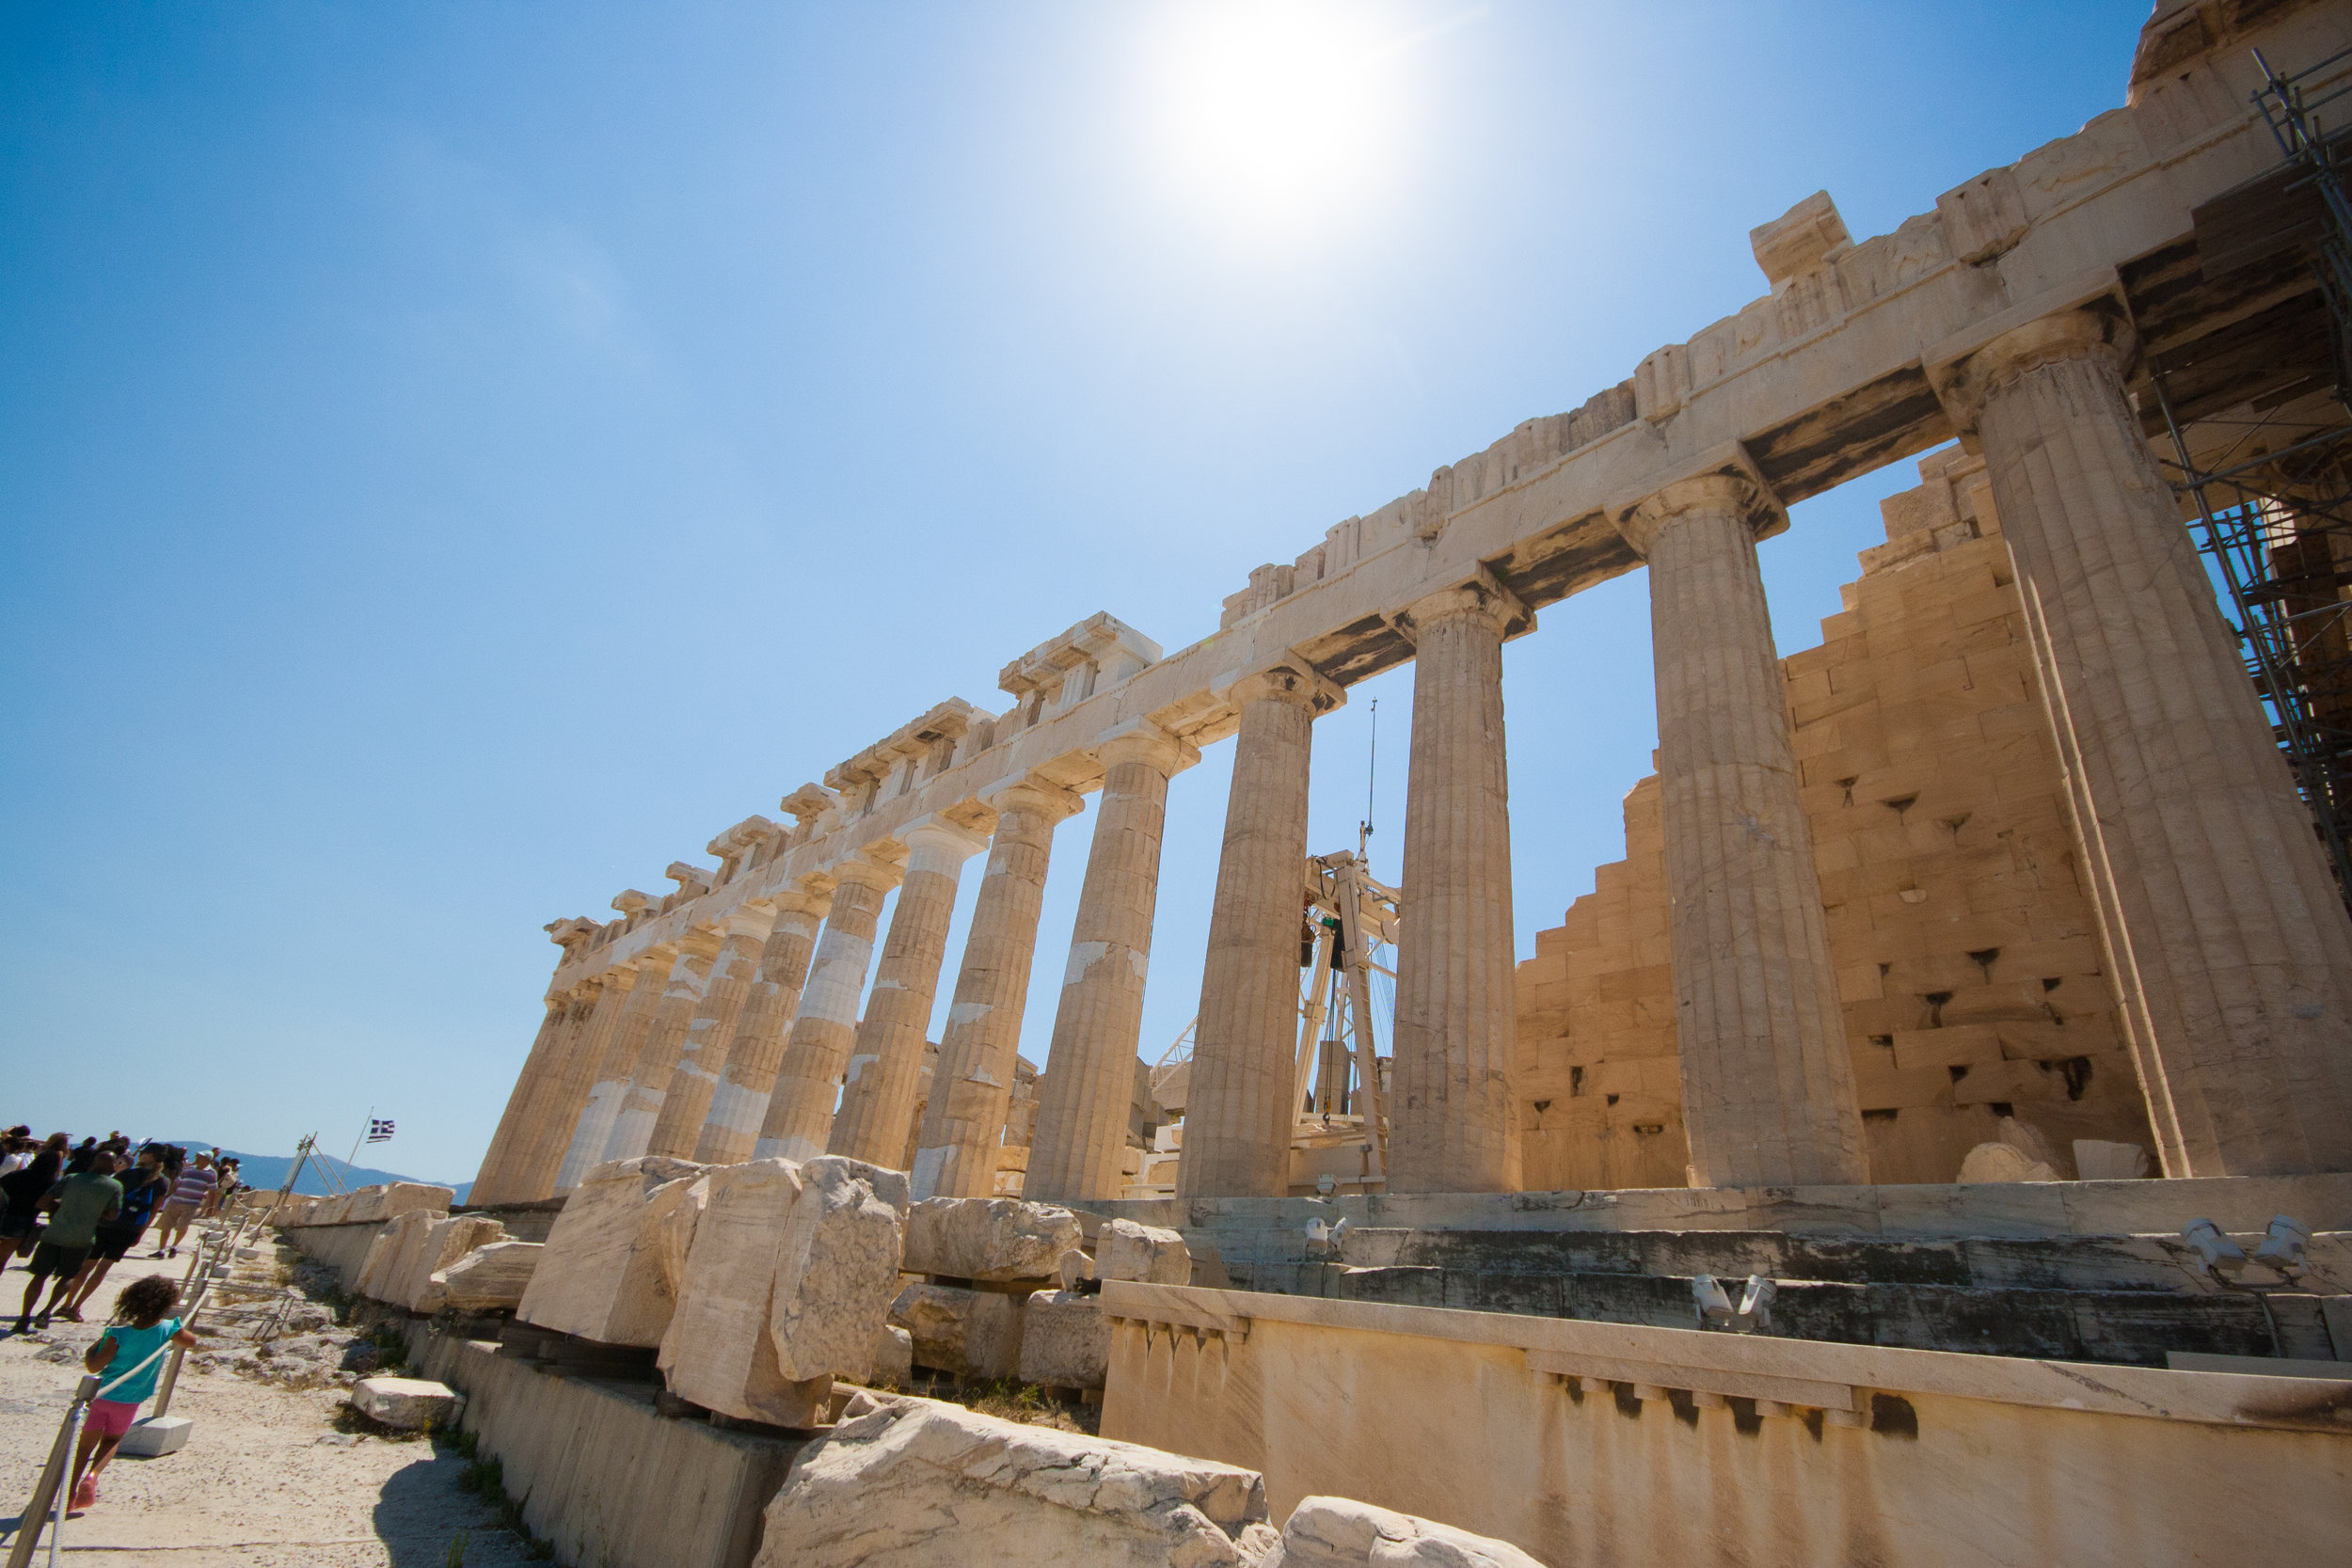 The Parthenon is a temple that was dedicated to the goddess Athena and was completed in 438 BC.  2500 years old...incredible!